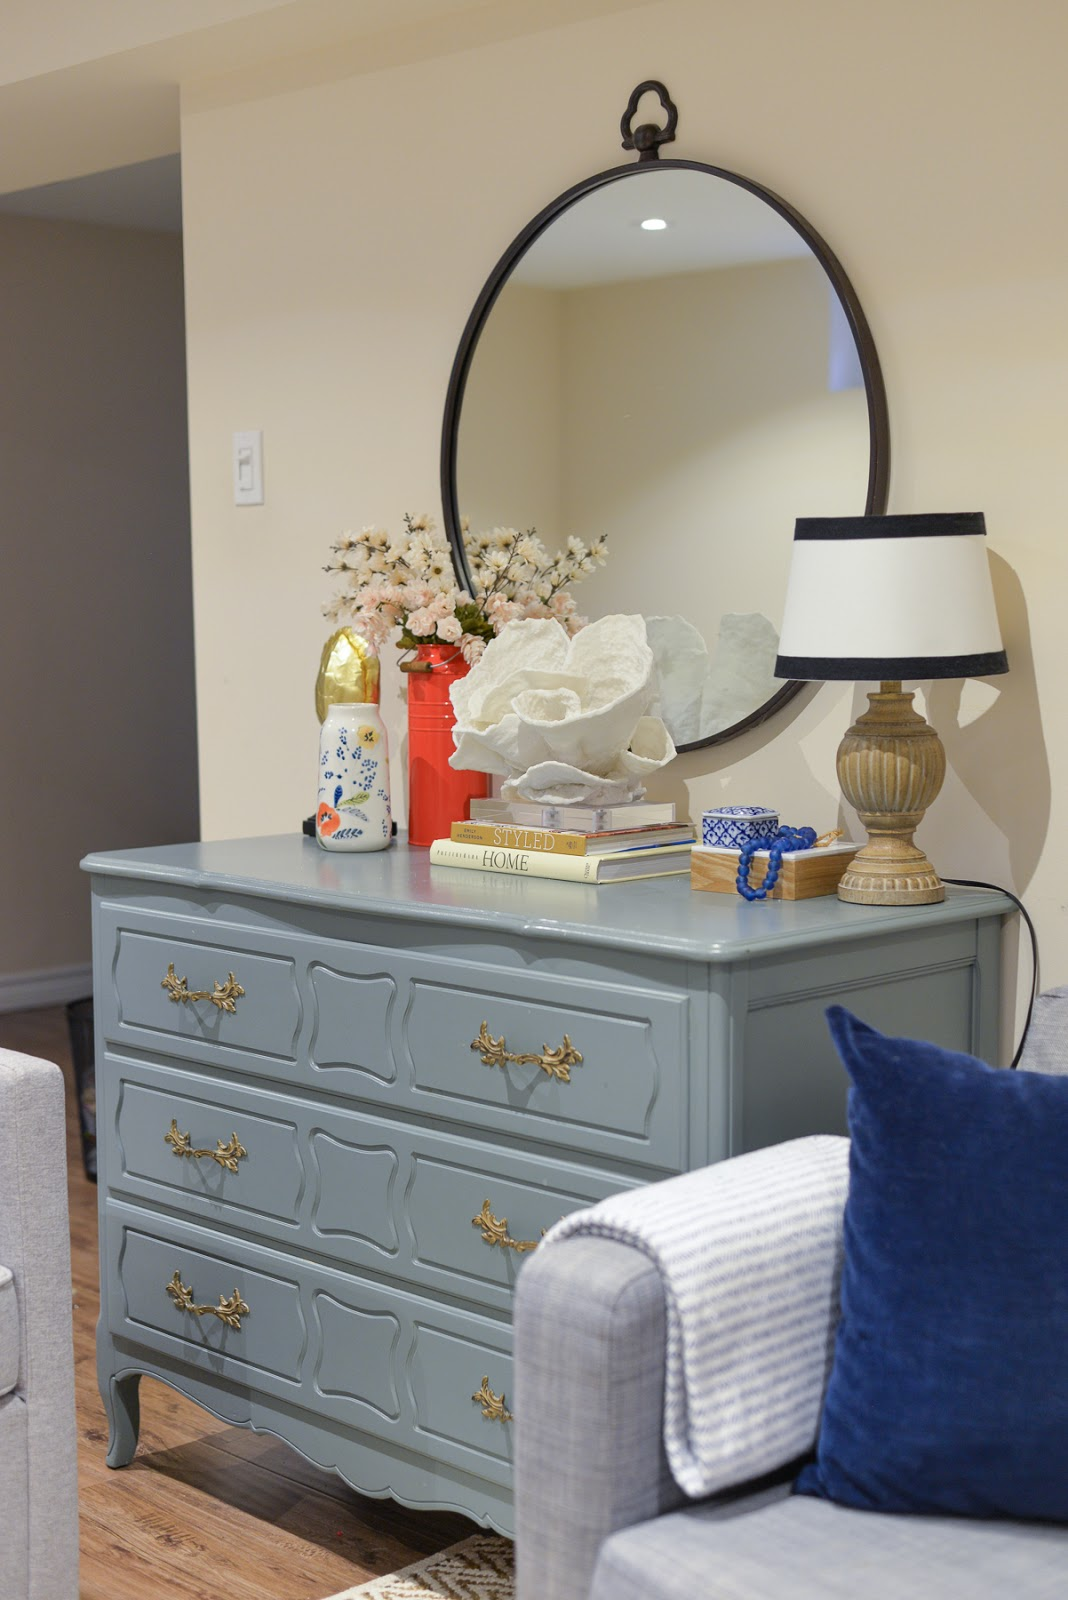 basement update, budget basement makeover, basement living room, coastal vignette, teal dresser, large round mirror over dresser